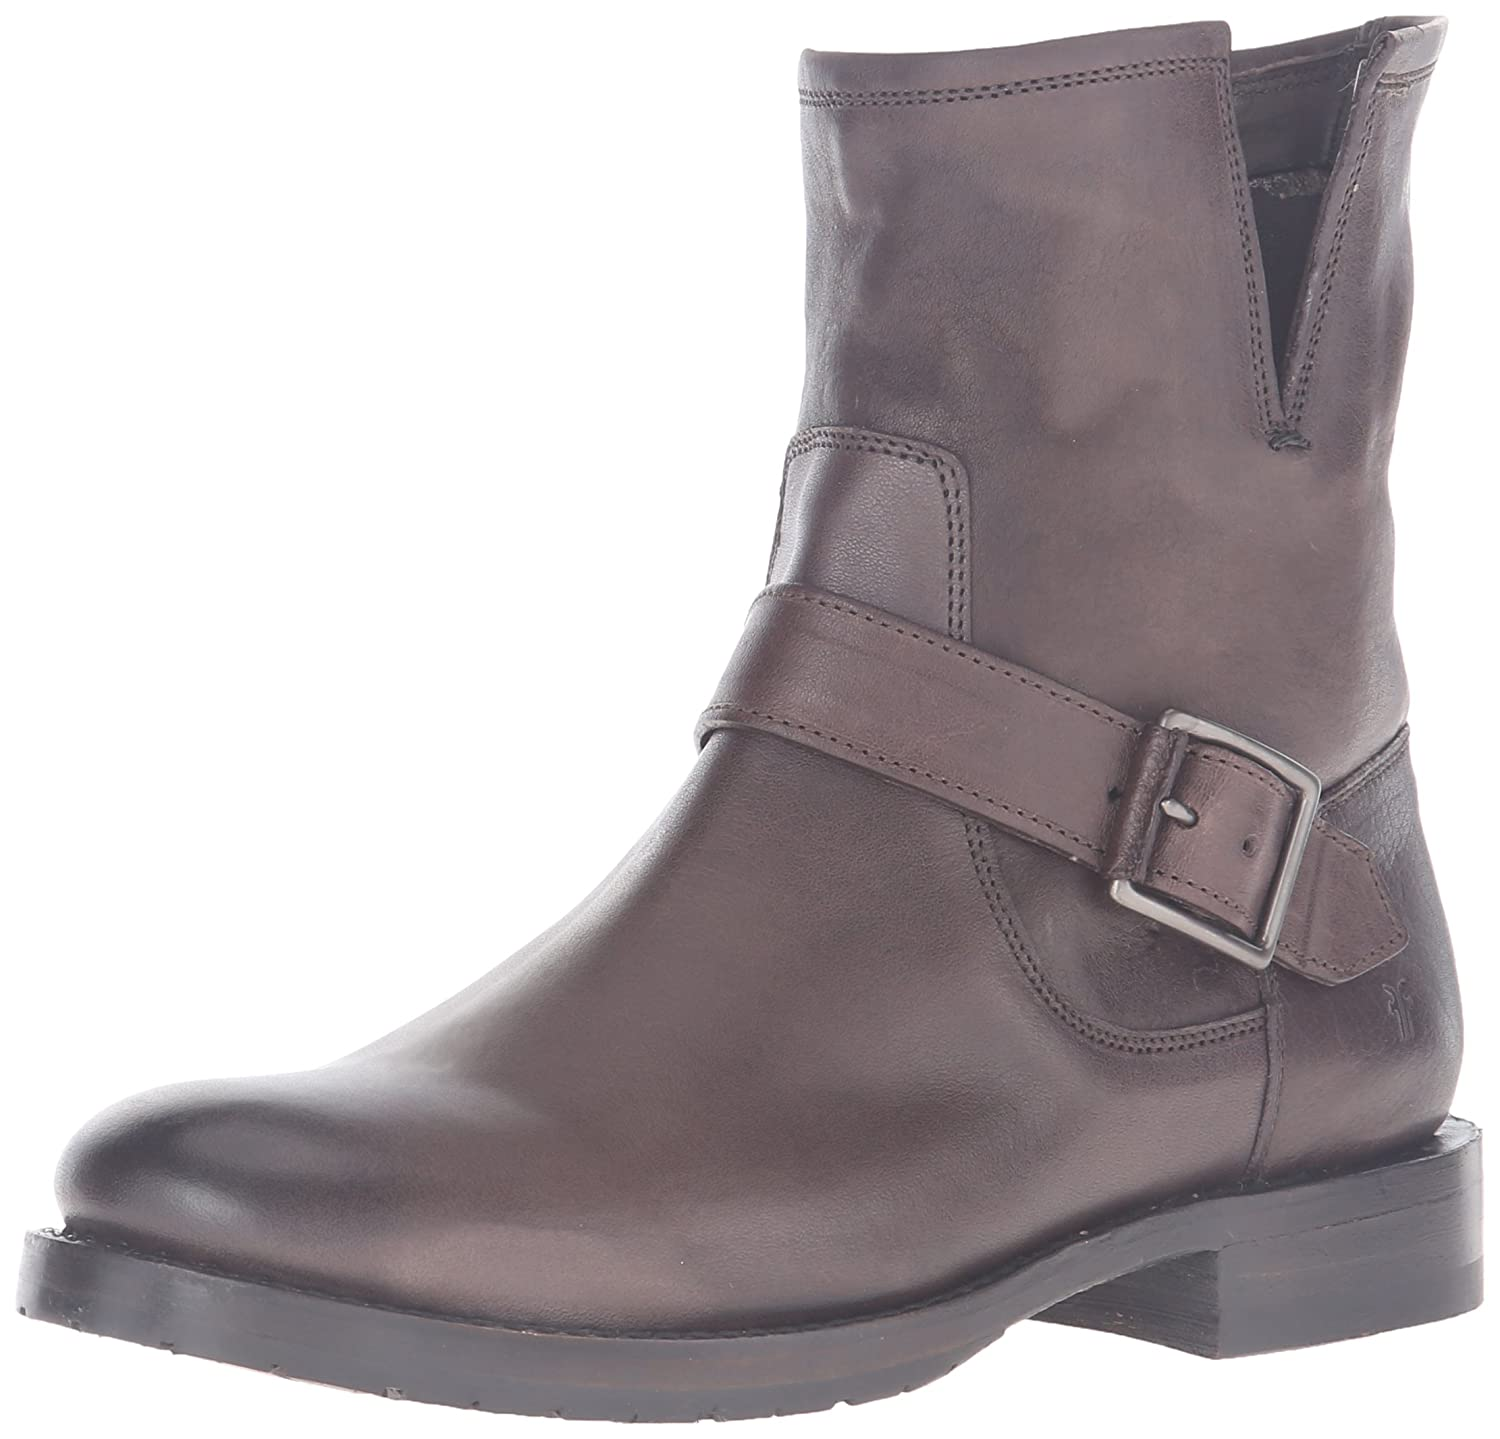 FRYE Women's Natalie Short Engineer Boot B0193YXC44 6.5 B(M) US|Charcoal